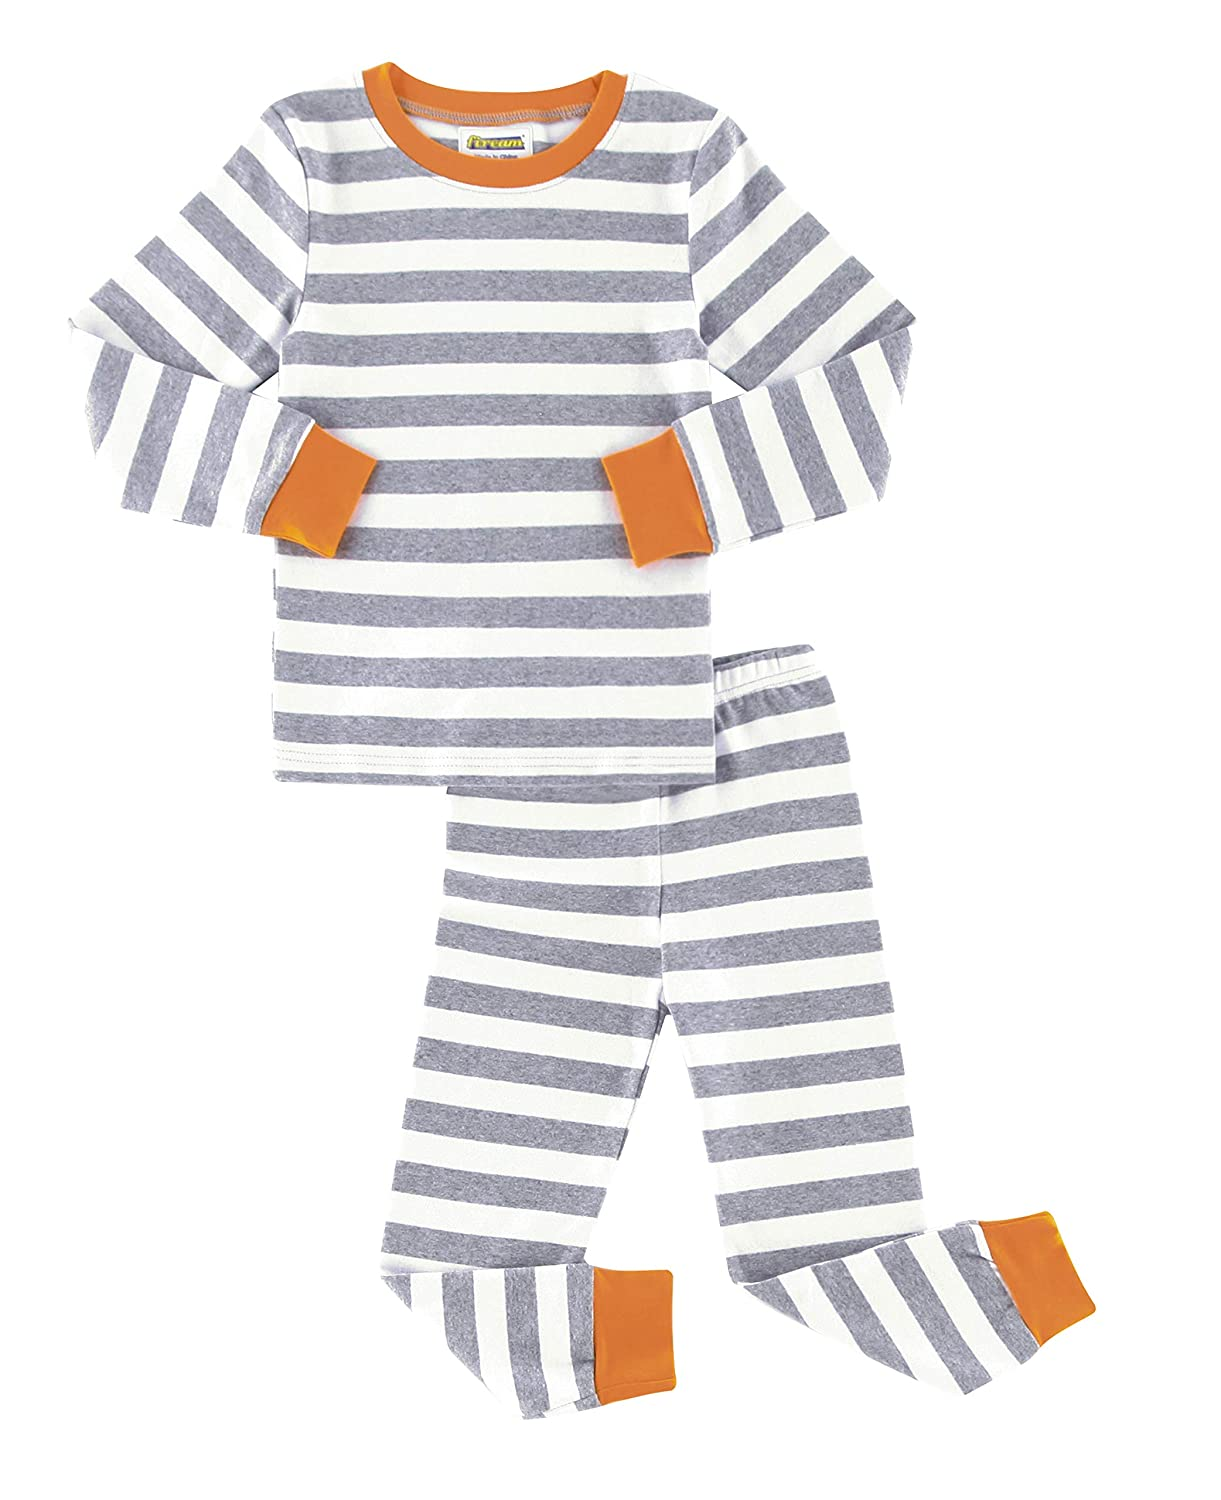 Fiream Girls Boys Pajamas Set 100% Cotton Stripe Long Sleeve Kids Sleepwear for Girls and Boys Size 12 Month-7 Years Mset005